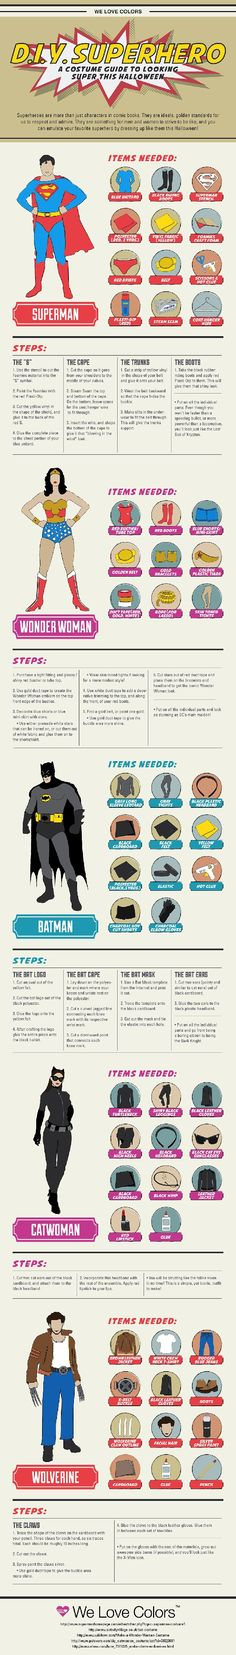 D.I.Y. Superhero Costumes